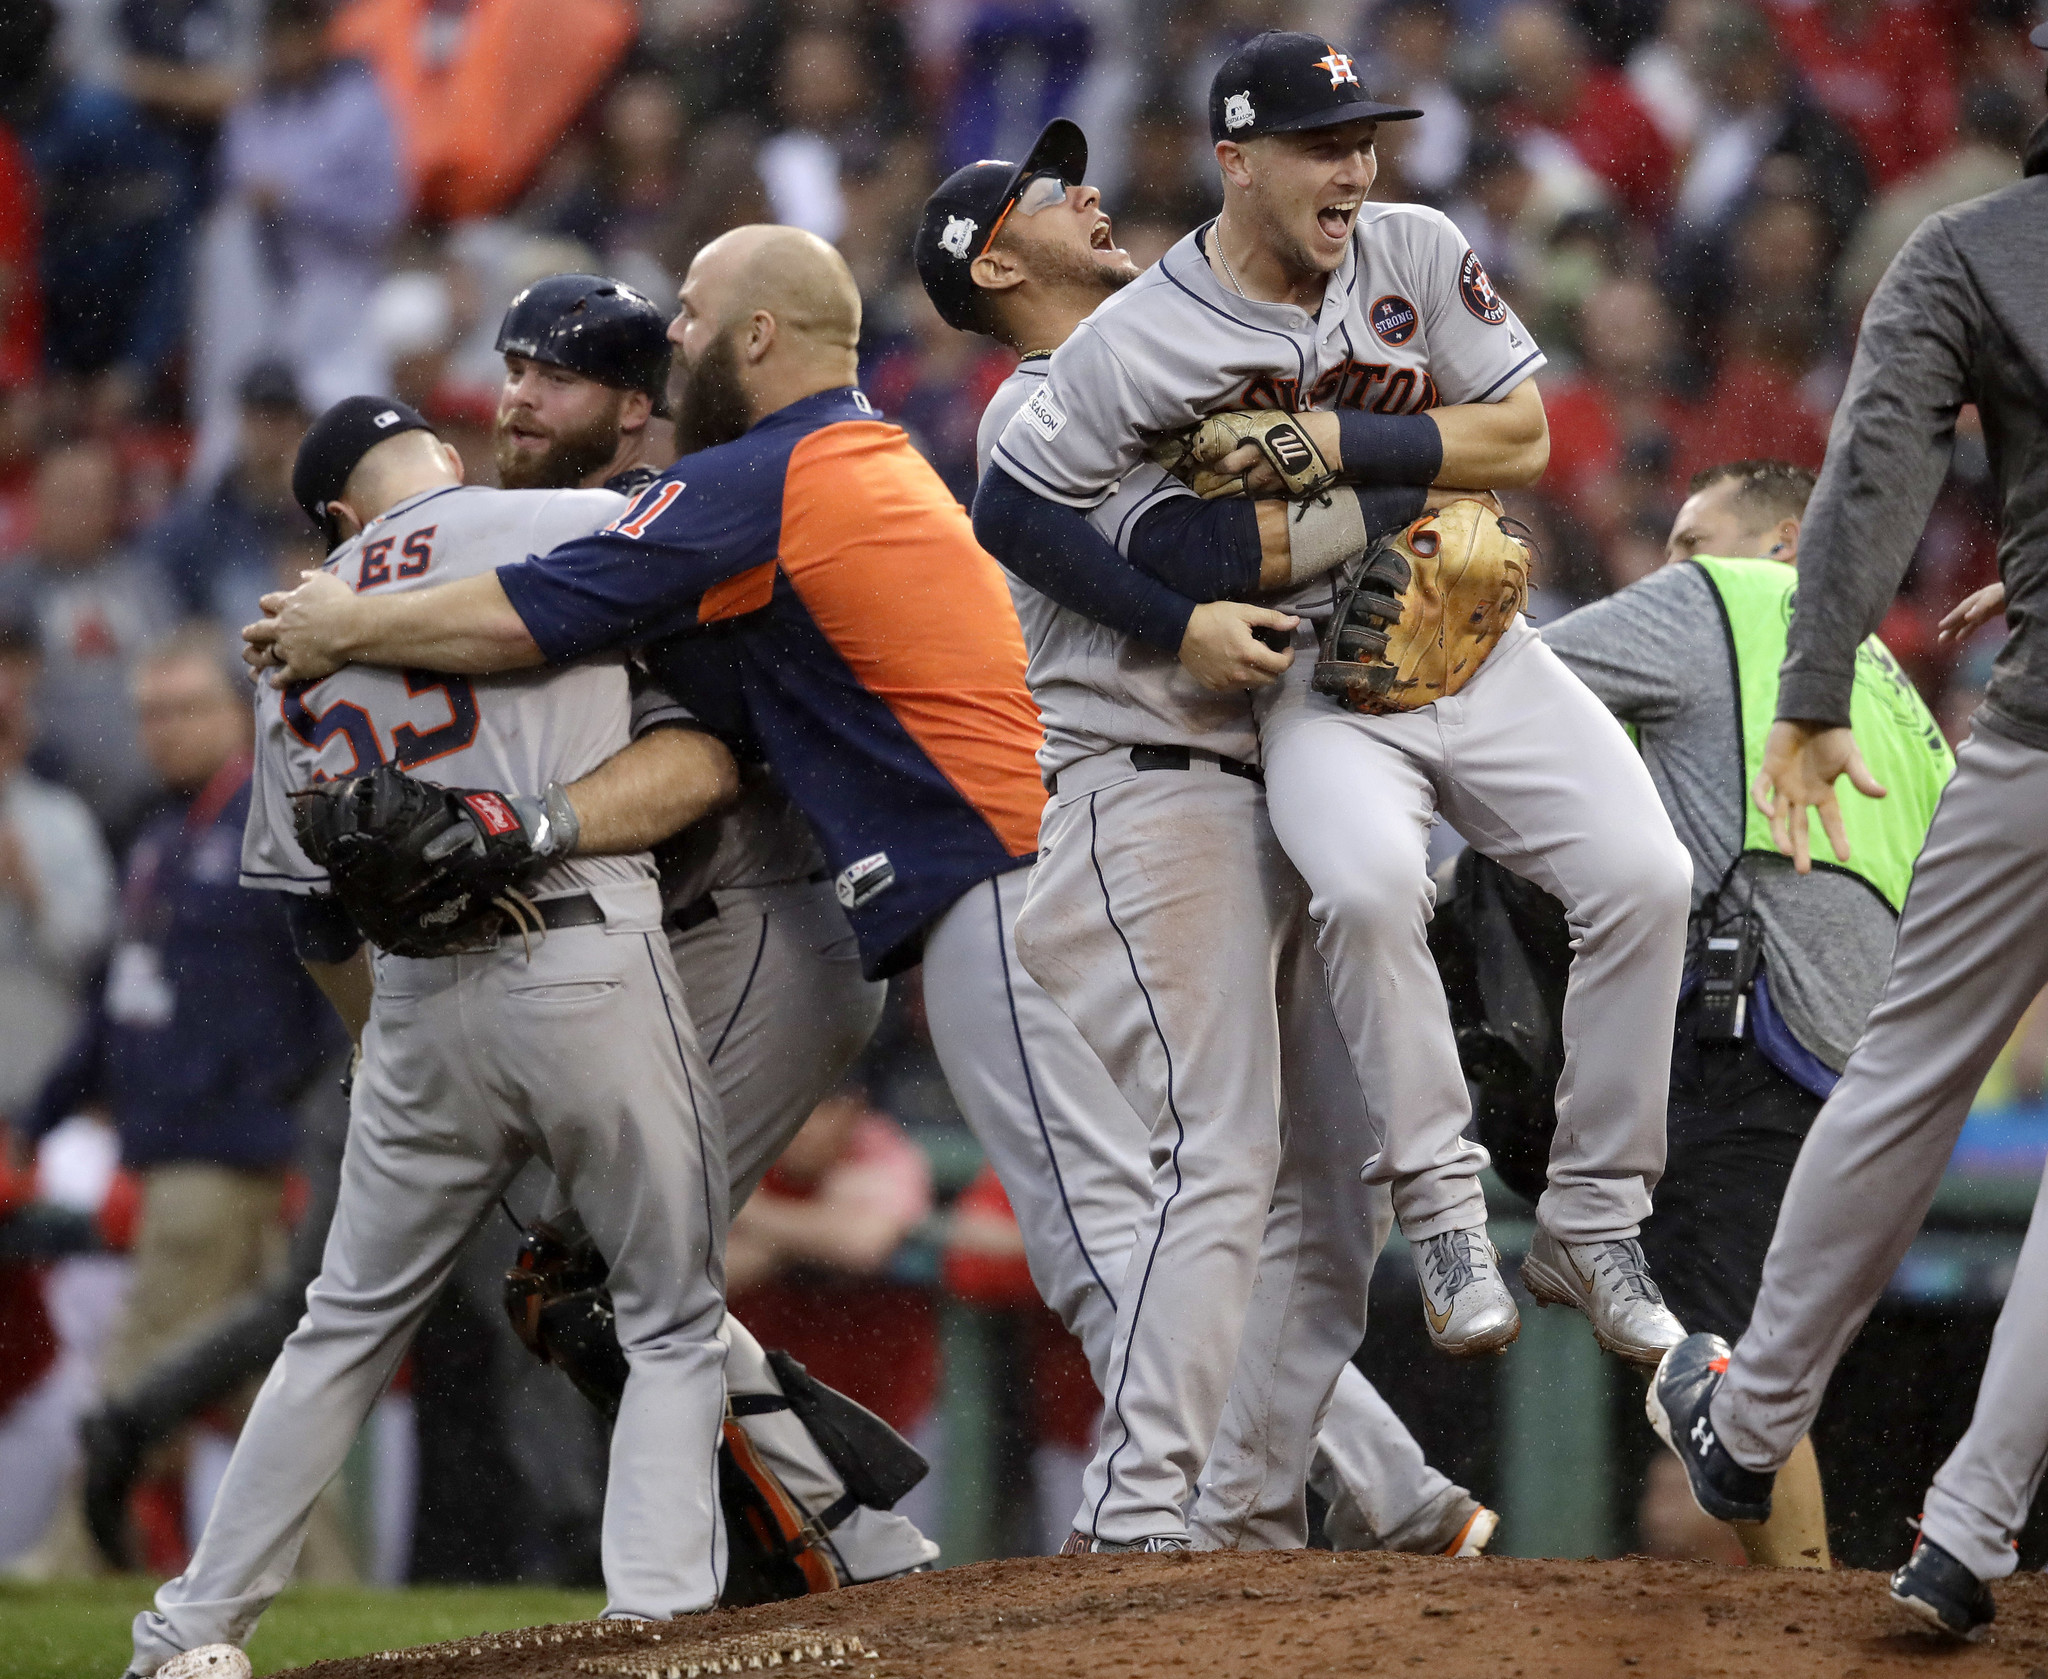 Ct-astros-beat-red-sox-advance-to-alcs-20171009